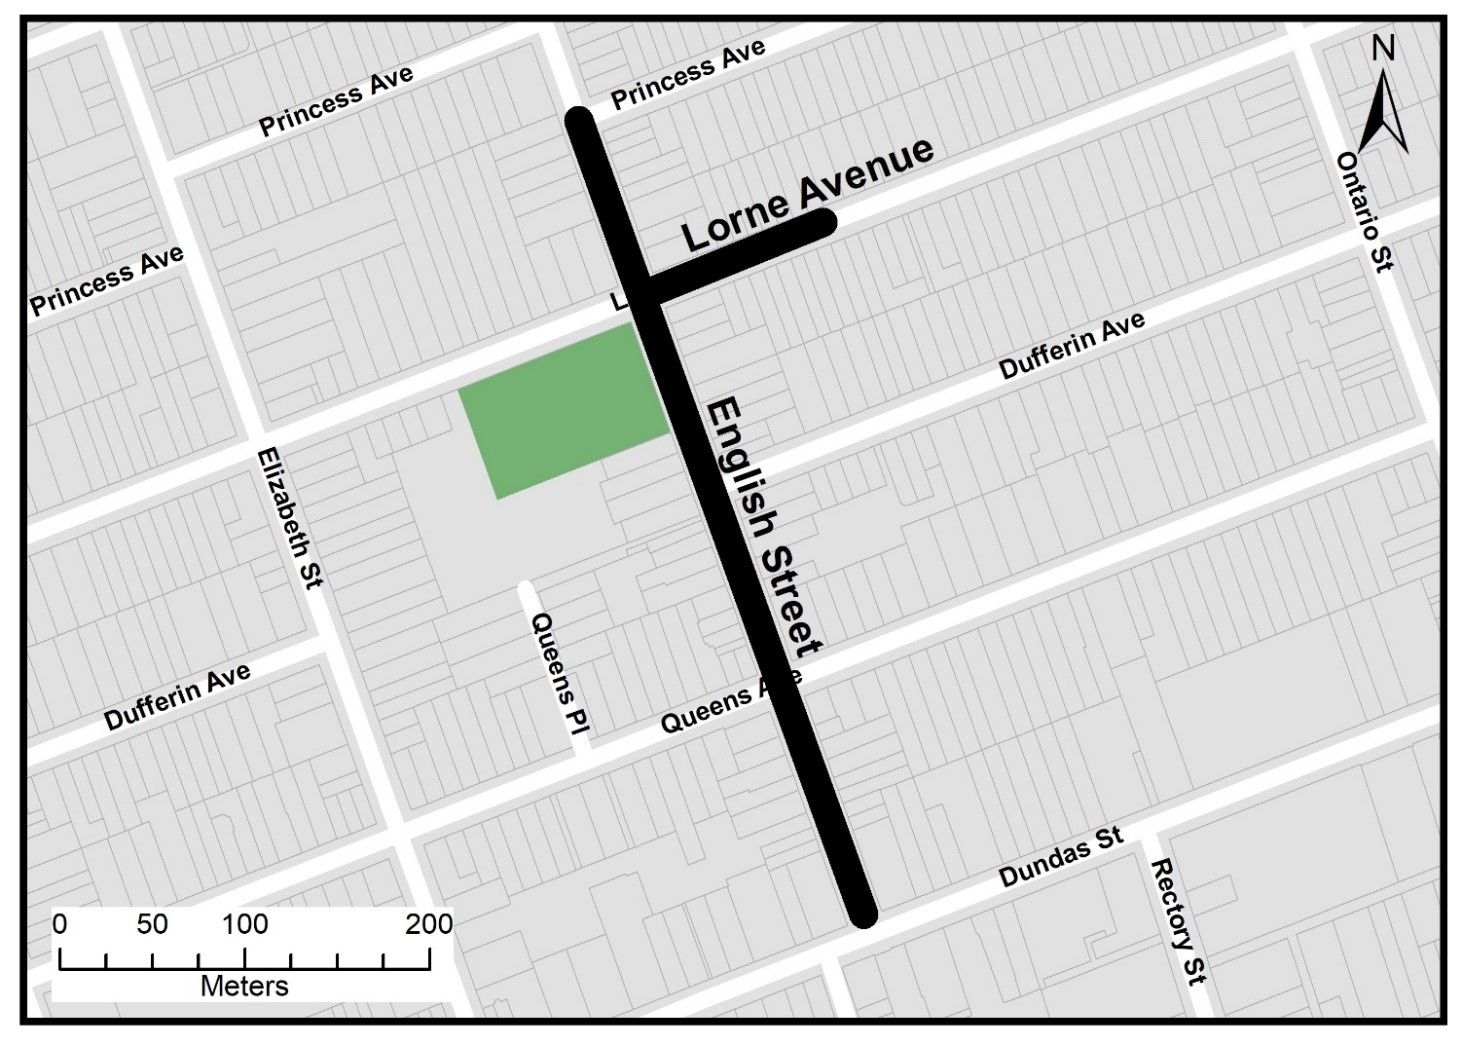 The map below shows the project limits on English Street, from Dundas Street to Princess Avenue and Lorne Avenue, from English Street to approximately 100 metres east of the intersection. For more information, please contact Ryan Armstrong at rarmstro@london.ca or by phone at 519-661-2489 x 5207.